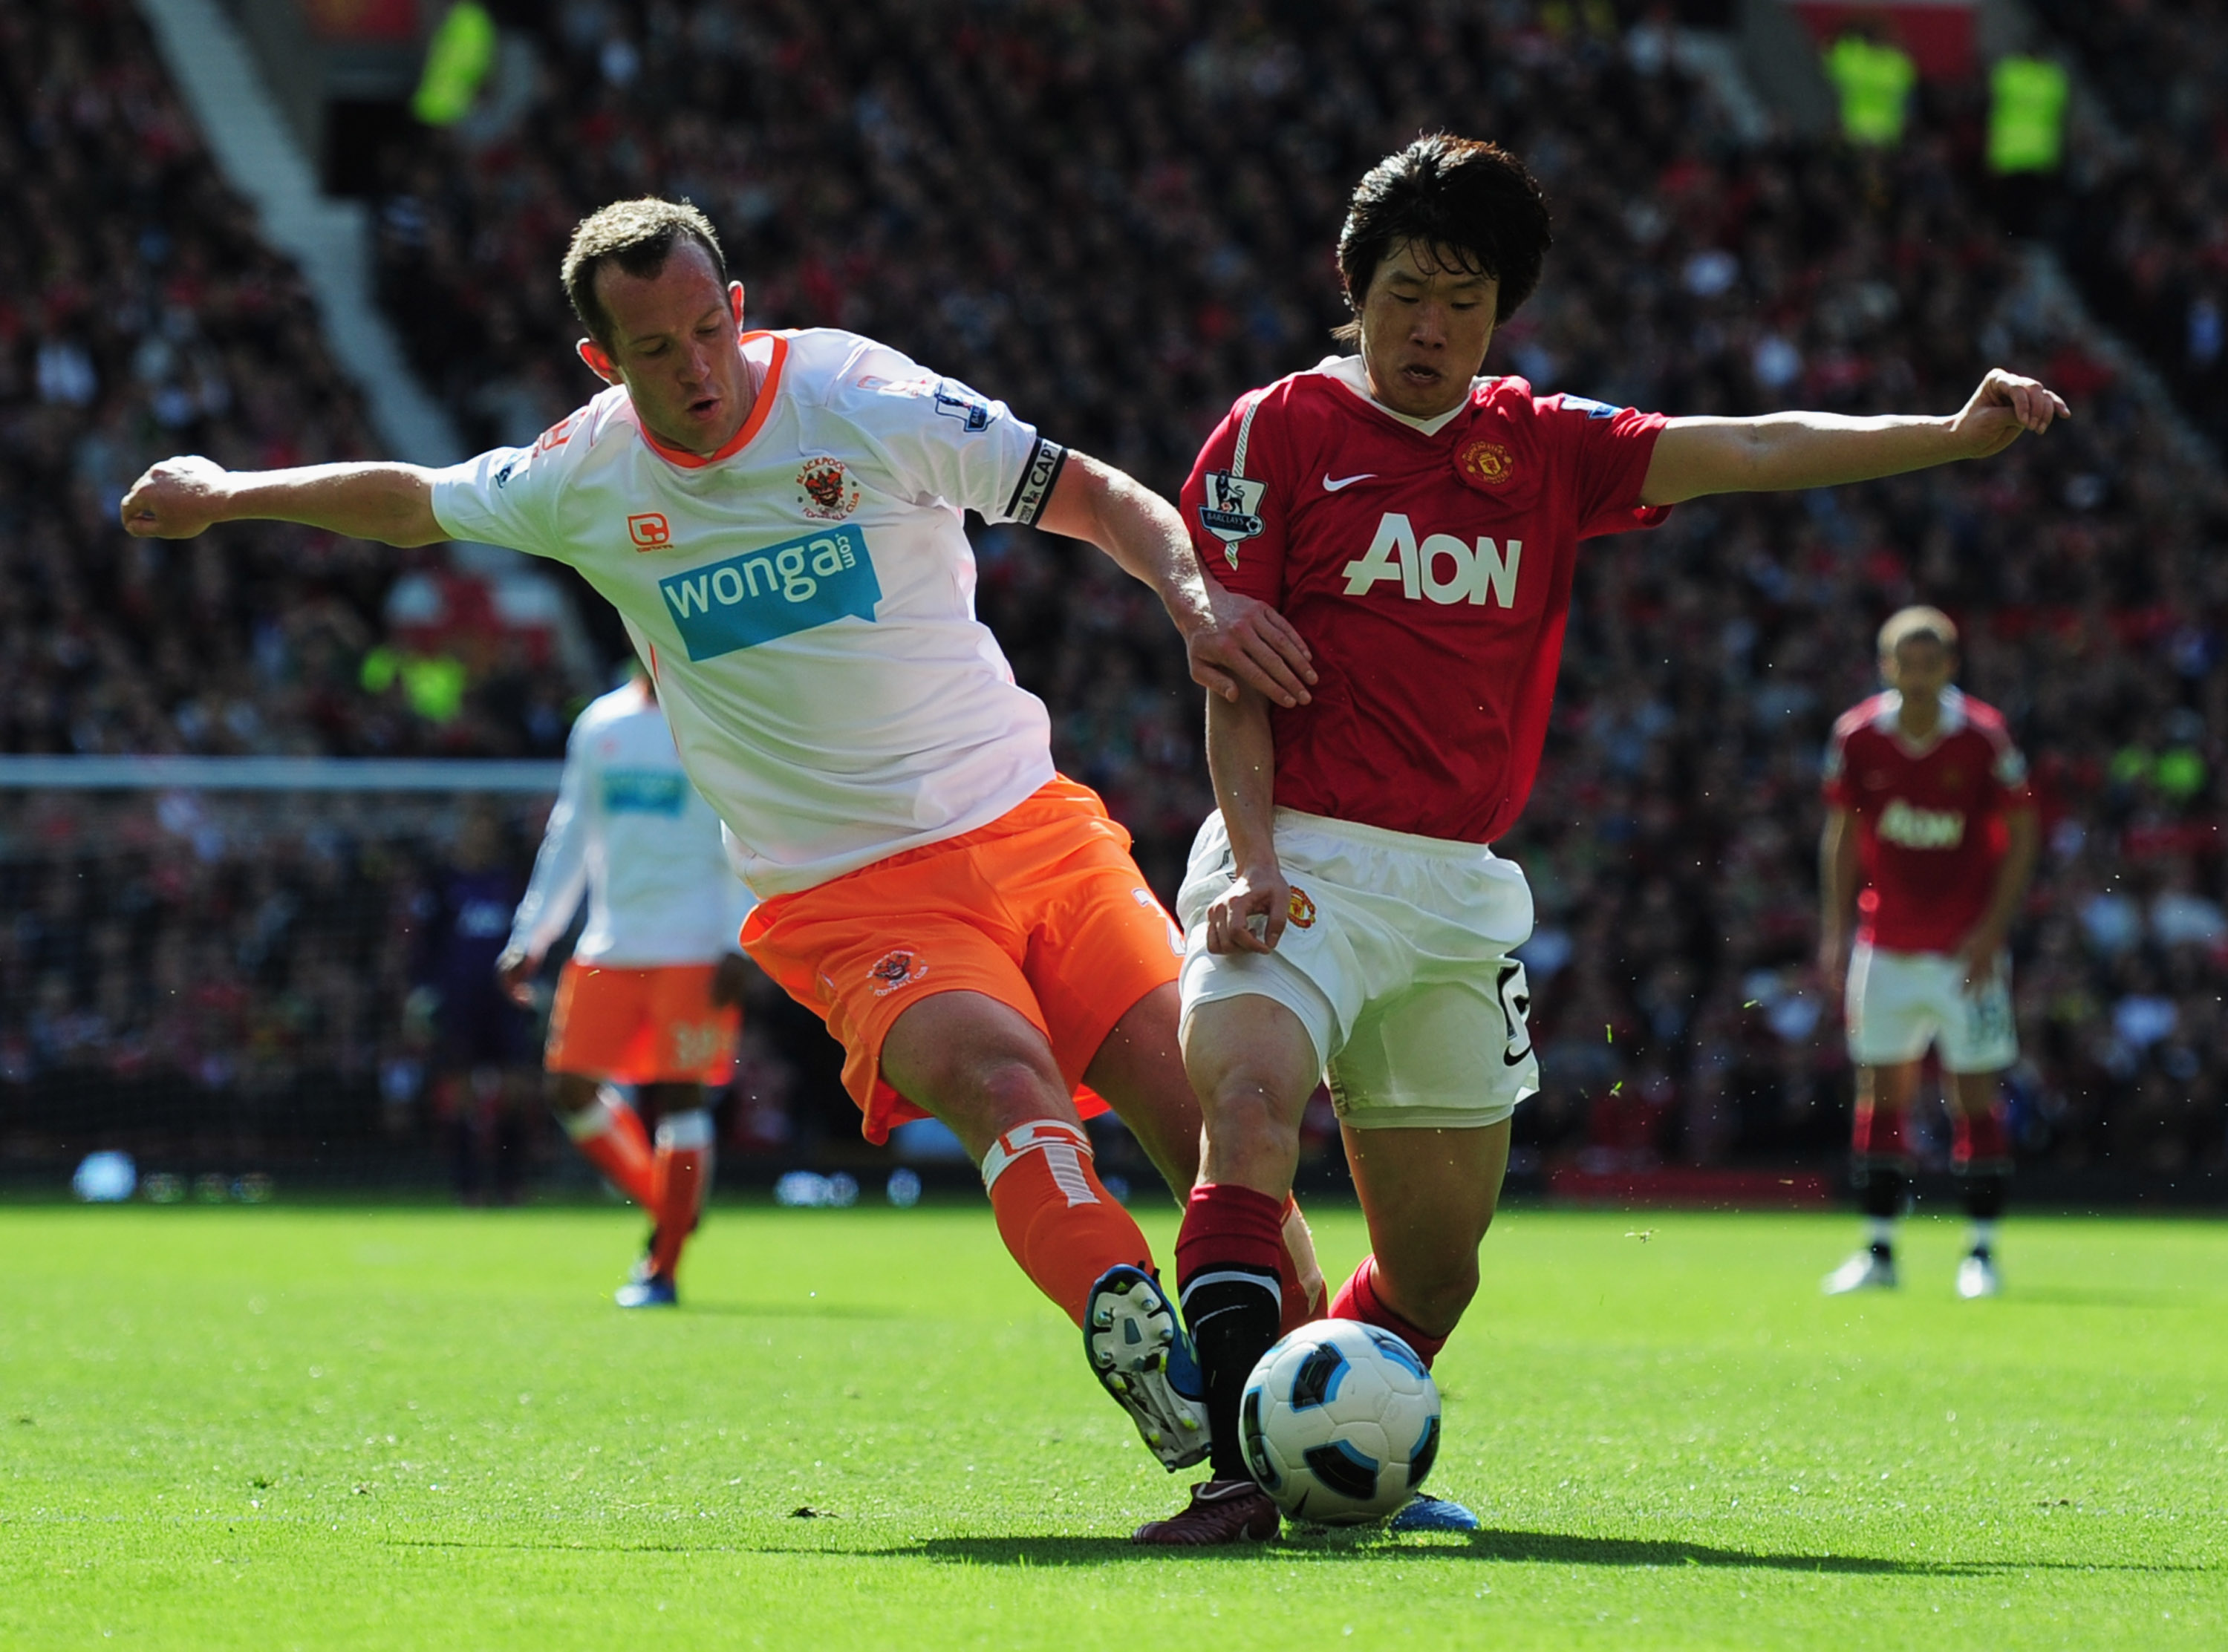 MANCHESTER, ENGLAND - MAY 22:  Park Ji-Sung of Manchester United is tackled by Charlie Adam of Blackpool during the Barclays Premier League match between Manchester United and Blackpool at Old Trafford on May 22, 2011 in Manchester, England.  (Photo by Sh